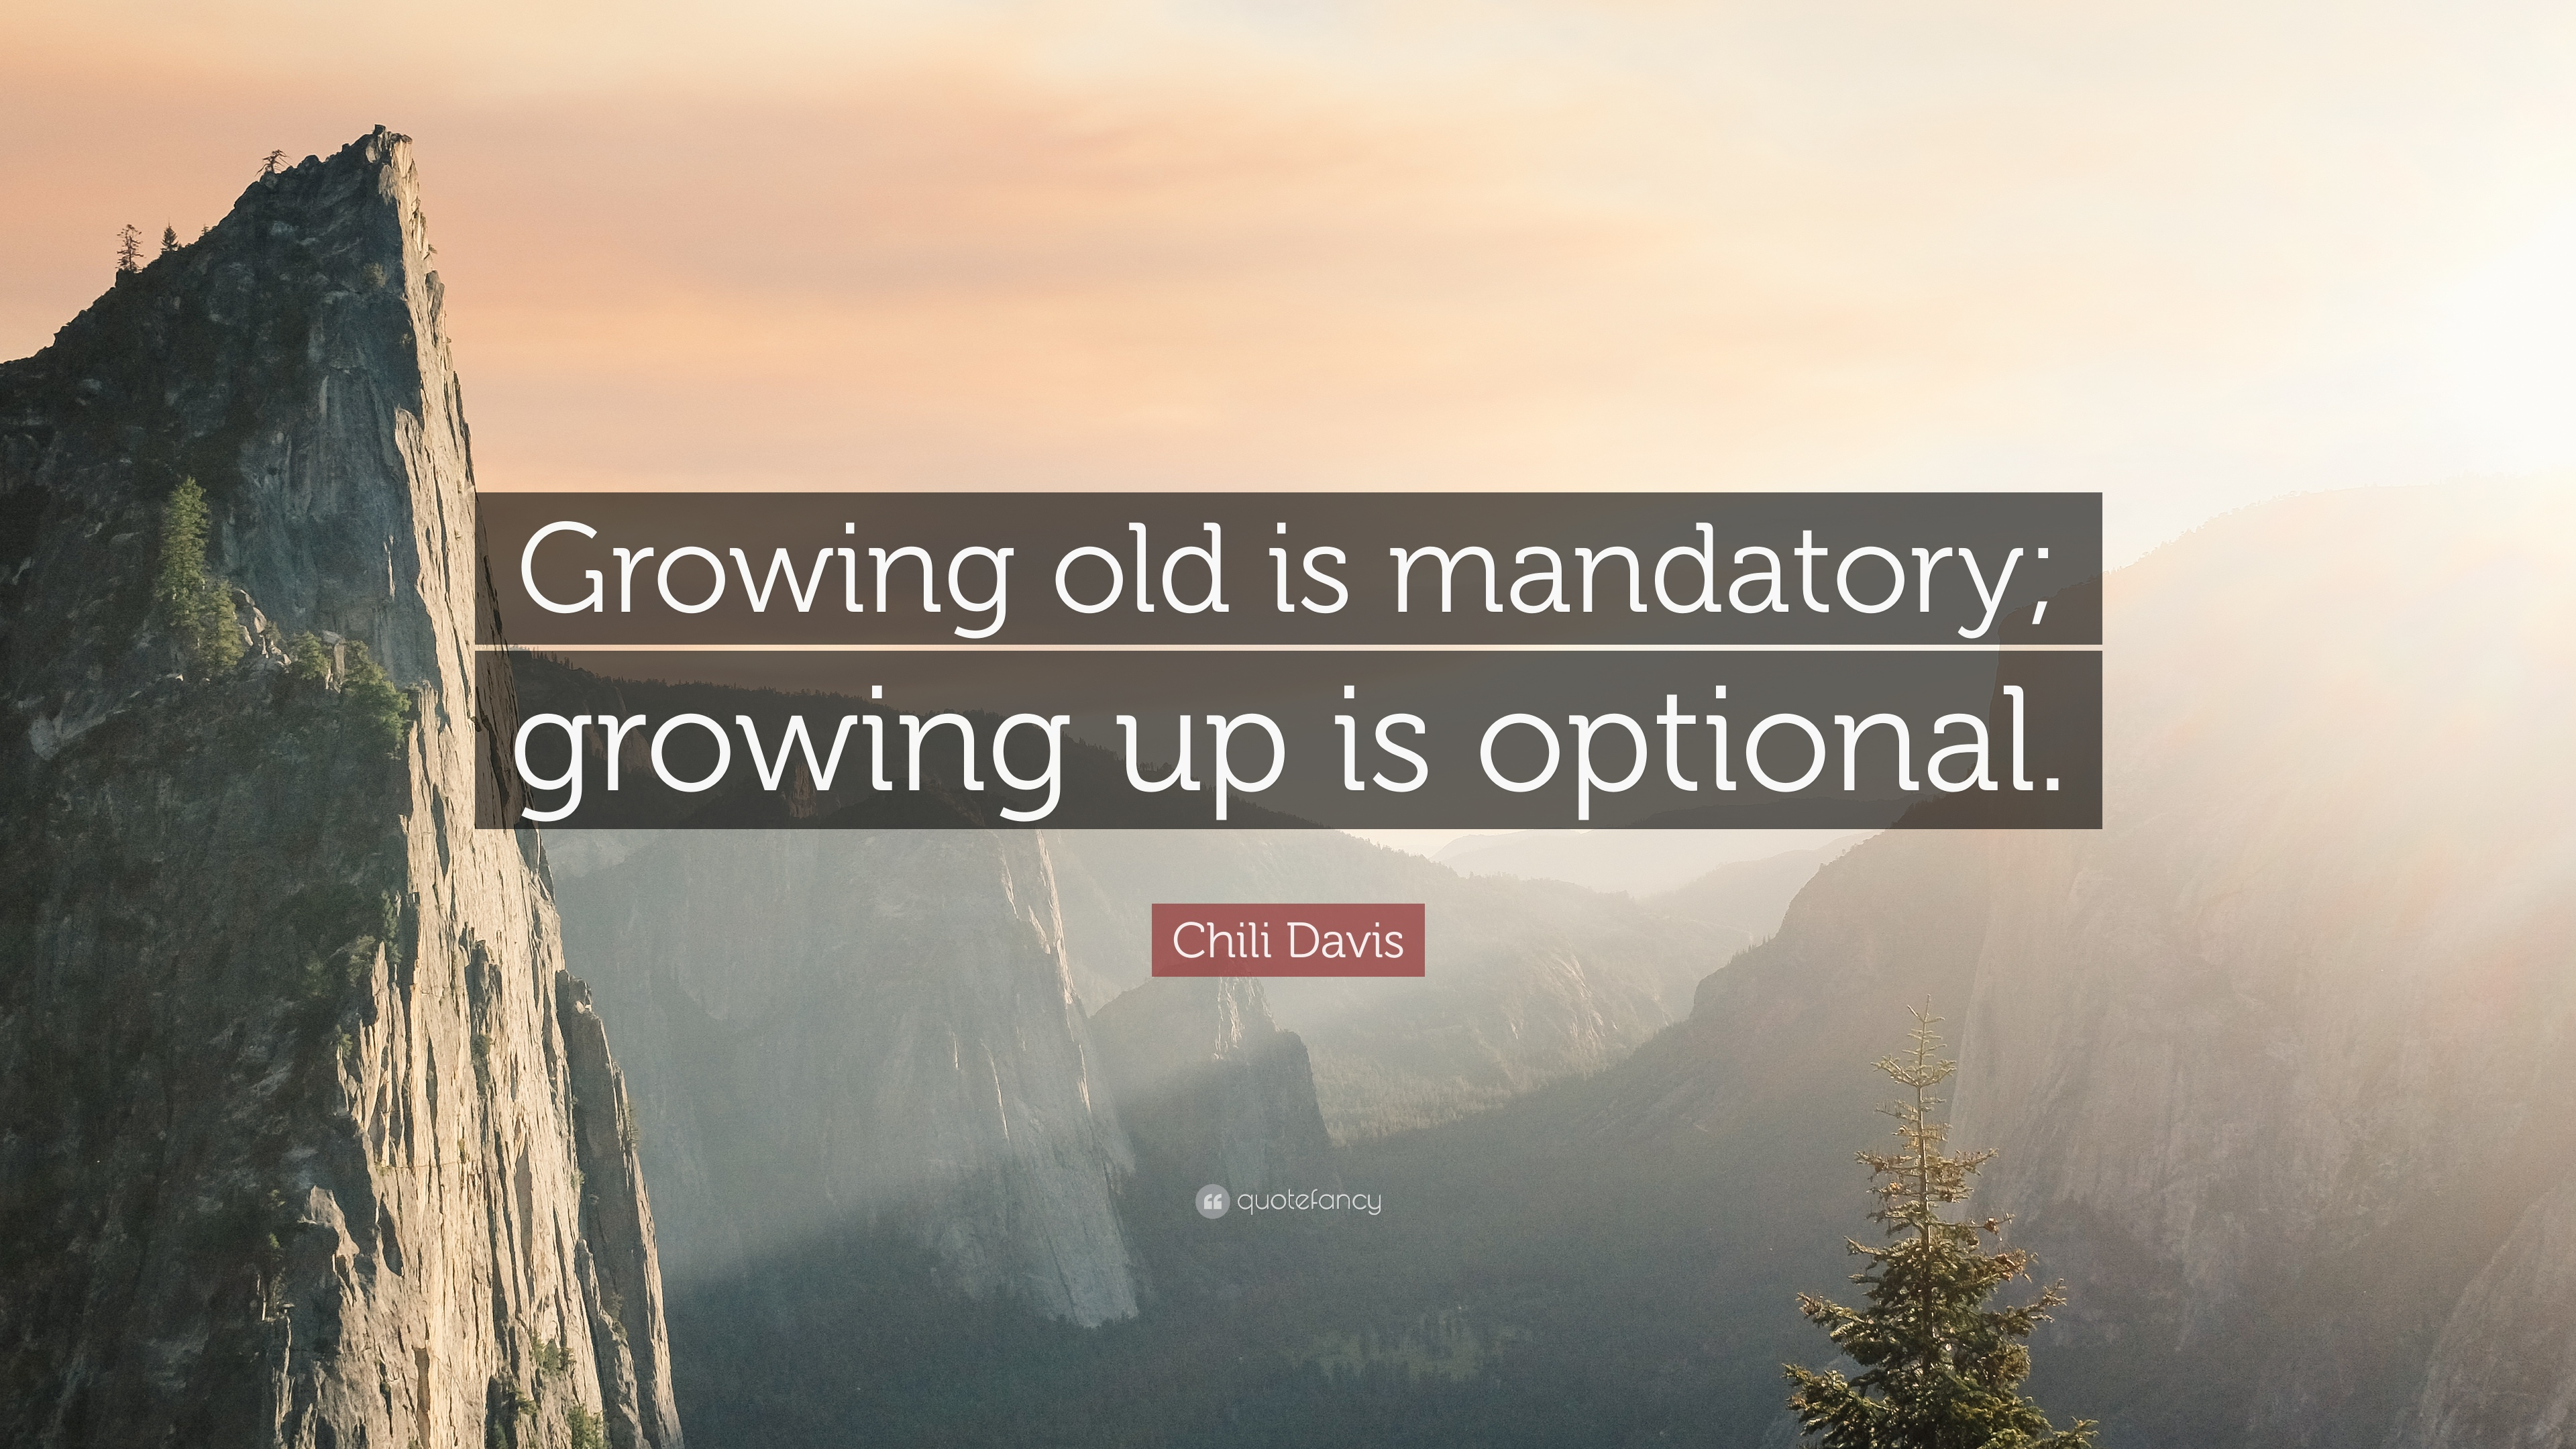 Quotes About Growing Old Chili Davis Quotes 19 Wallpapers  Quotefancy